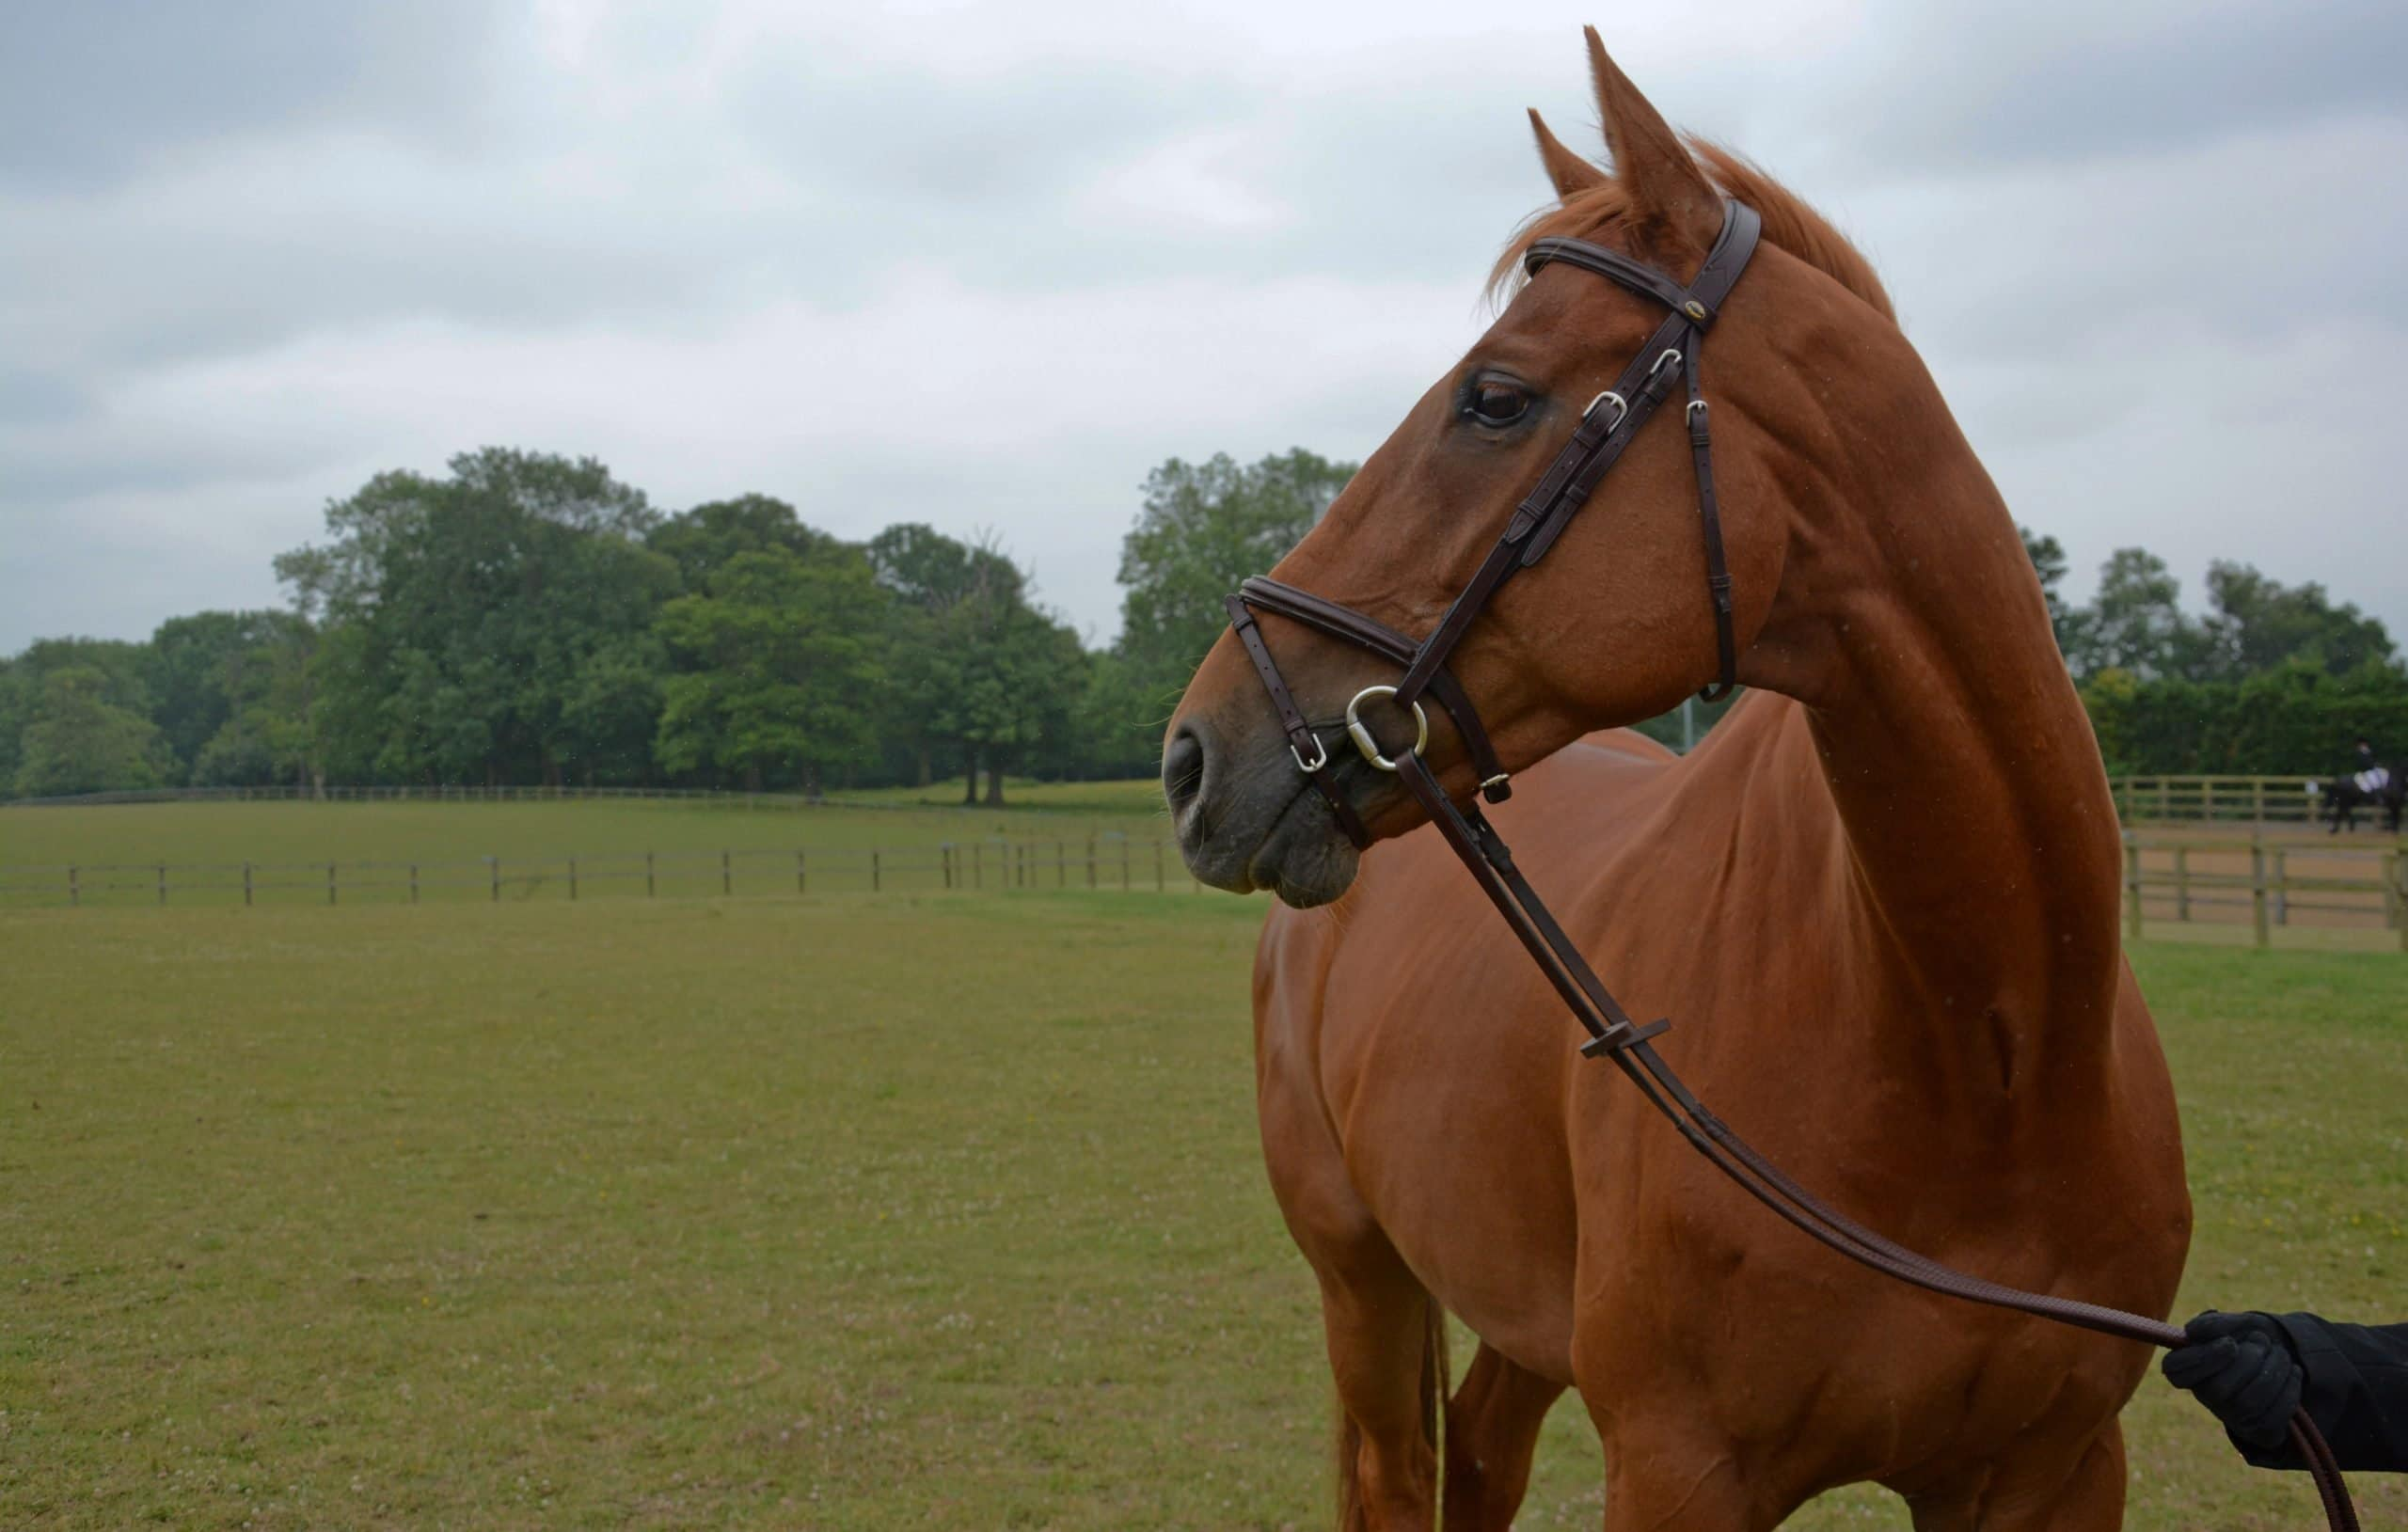 Does Bridle Fit Affect Performance?